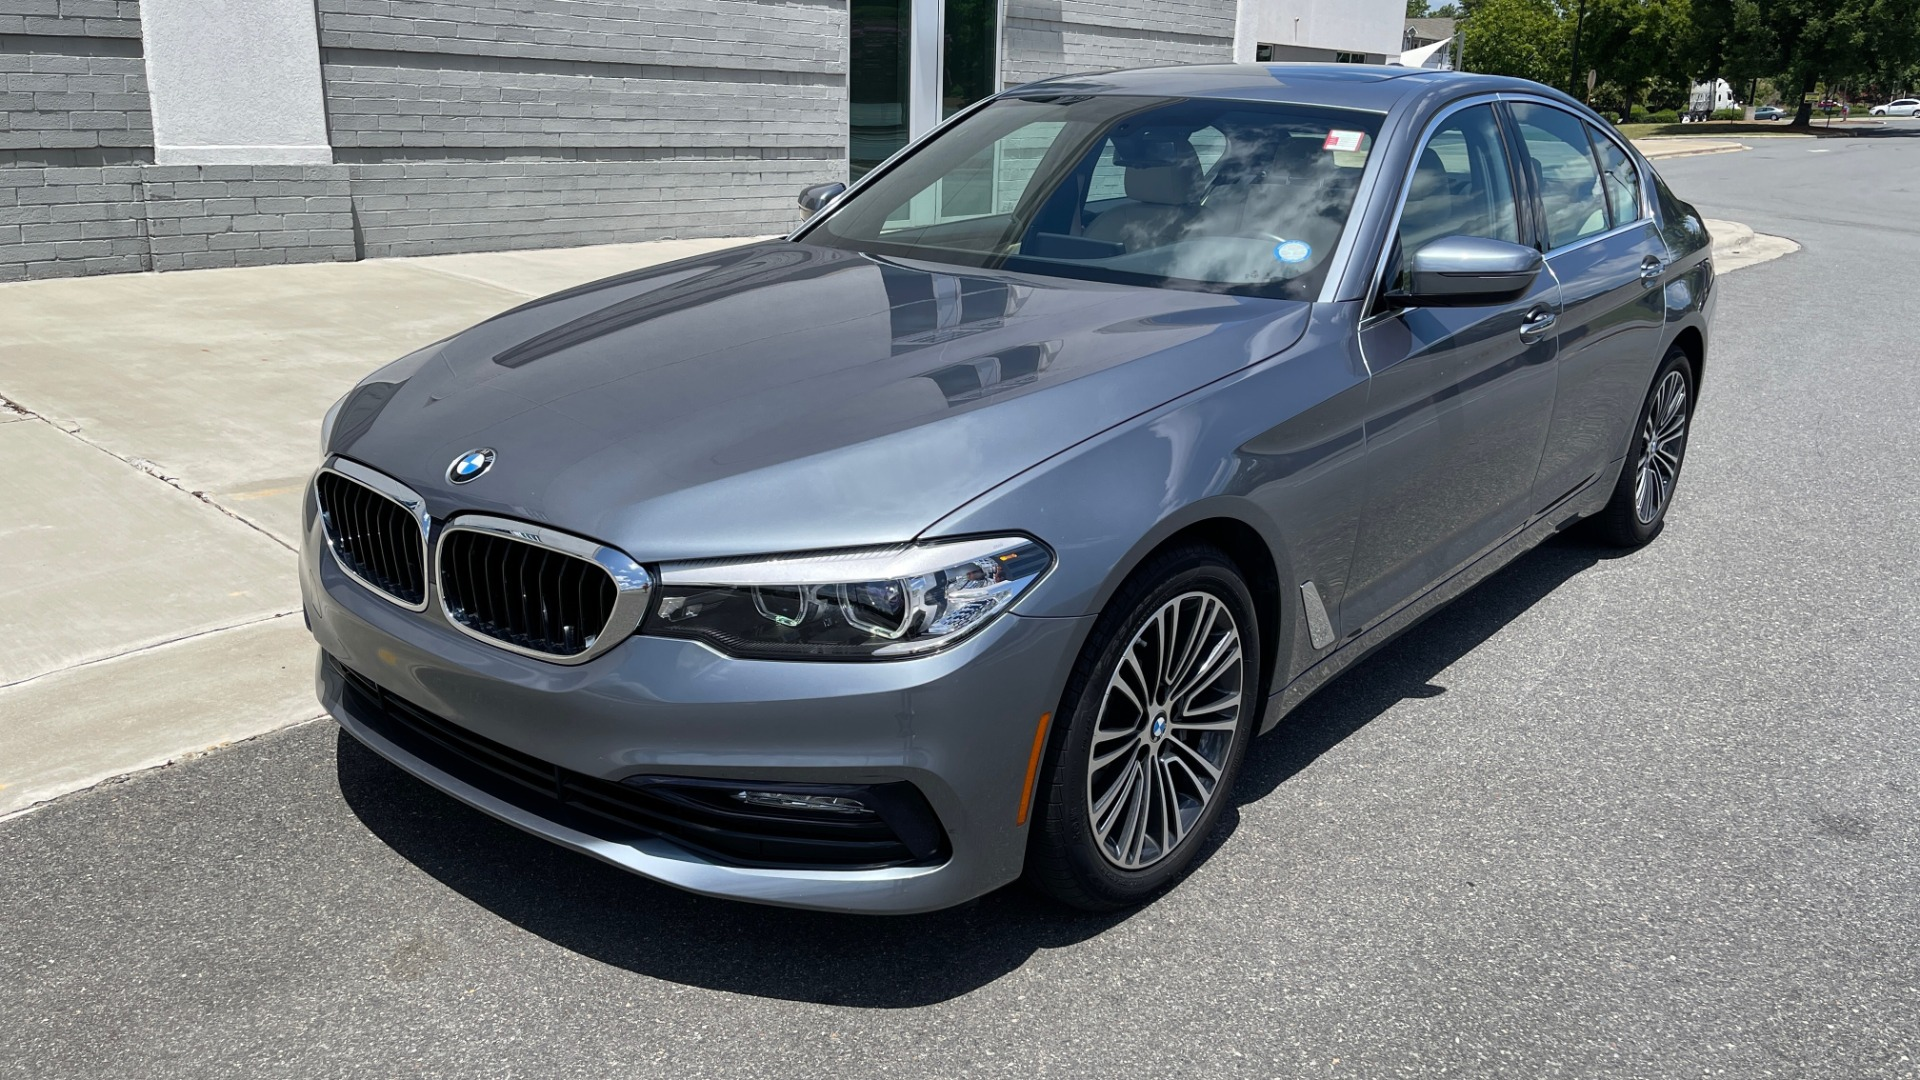 Used 2017 BMW 5 SERIES 530I PREMIUM / WIFI / NAV / SUNROOF / AUTO CLIMATE CONTROL for sale $31,795 at Formula Imports in Charlotte NC 28227 3